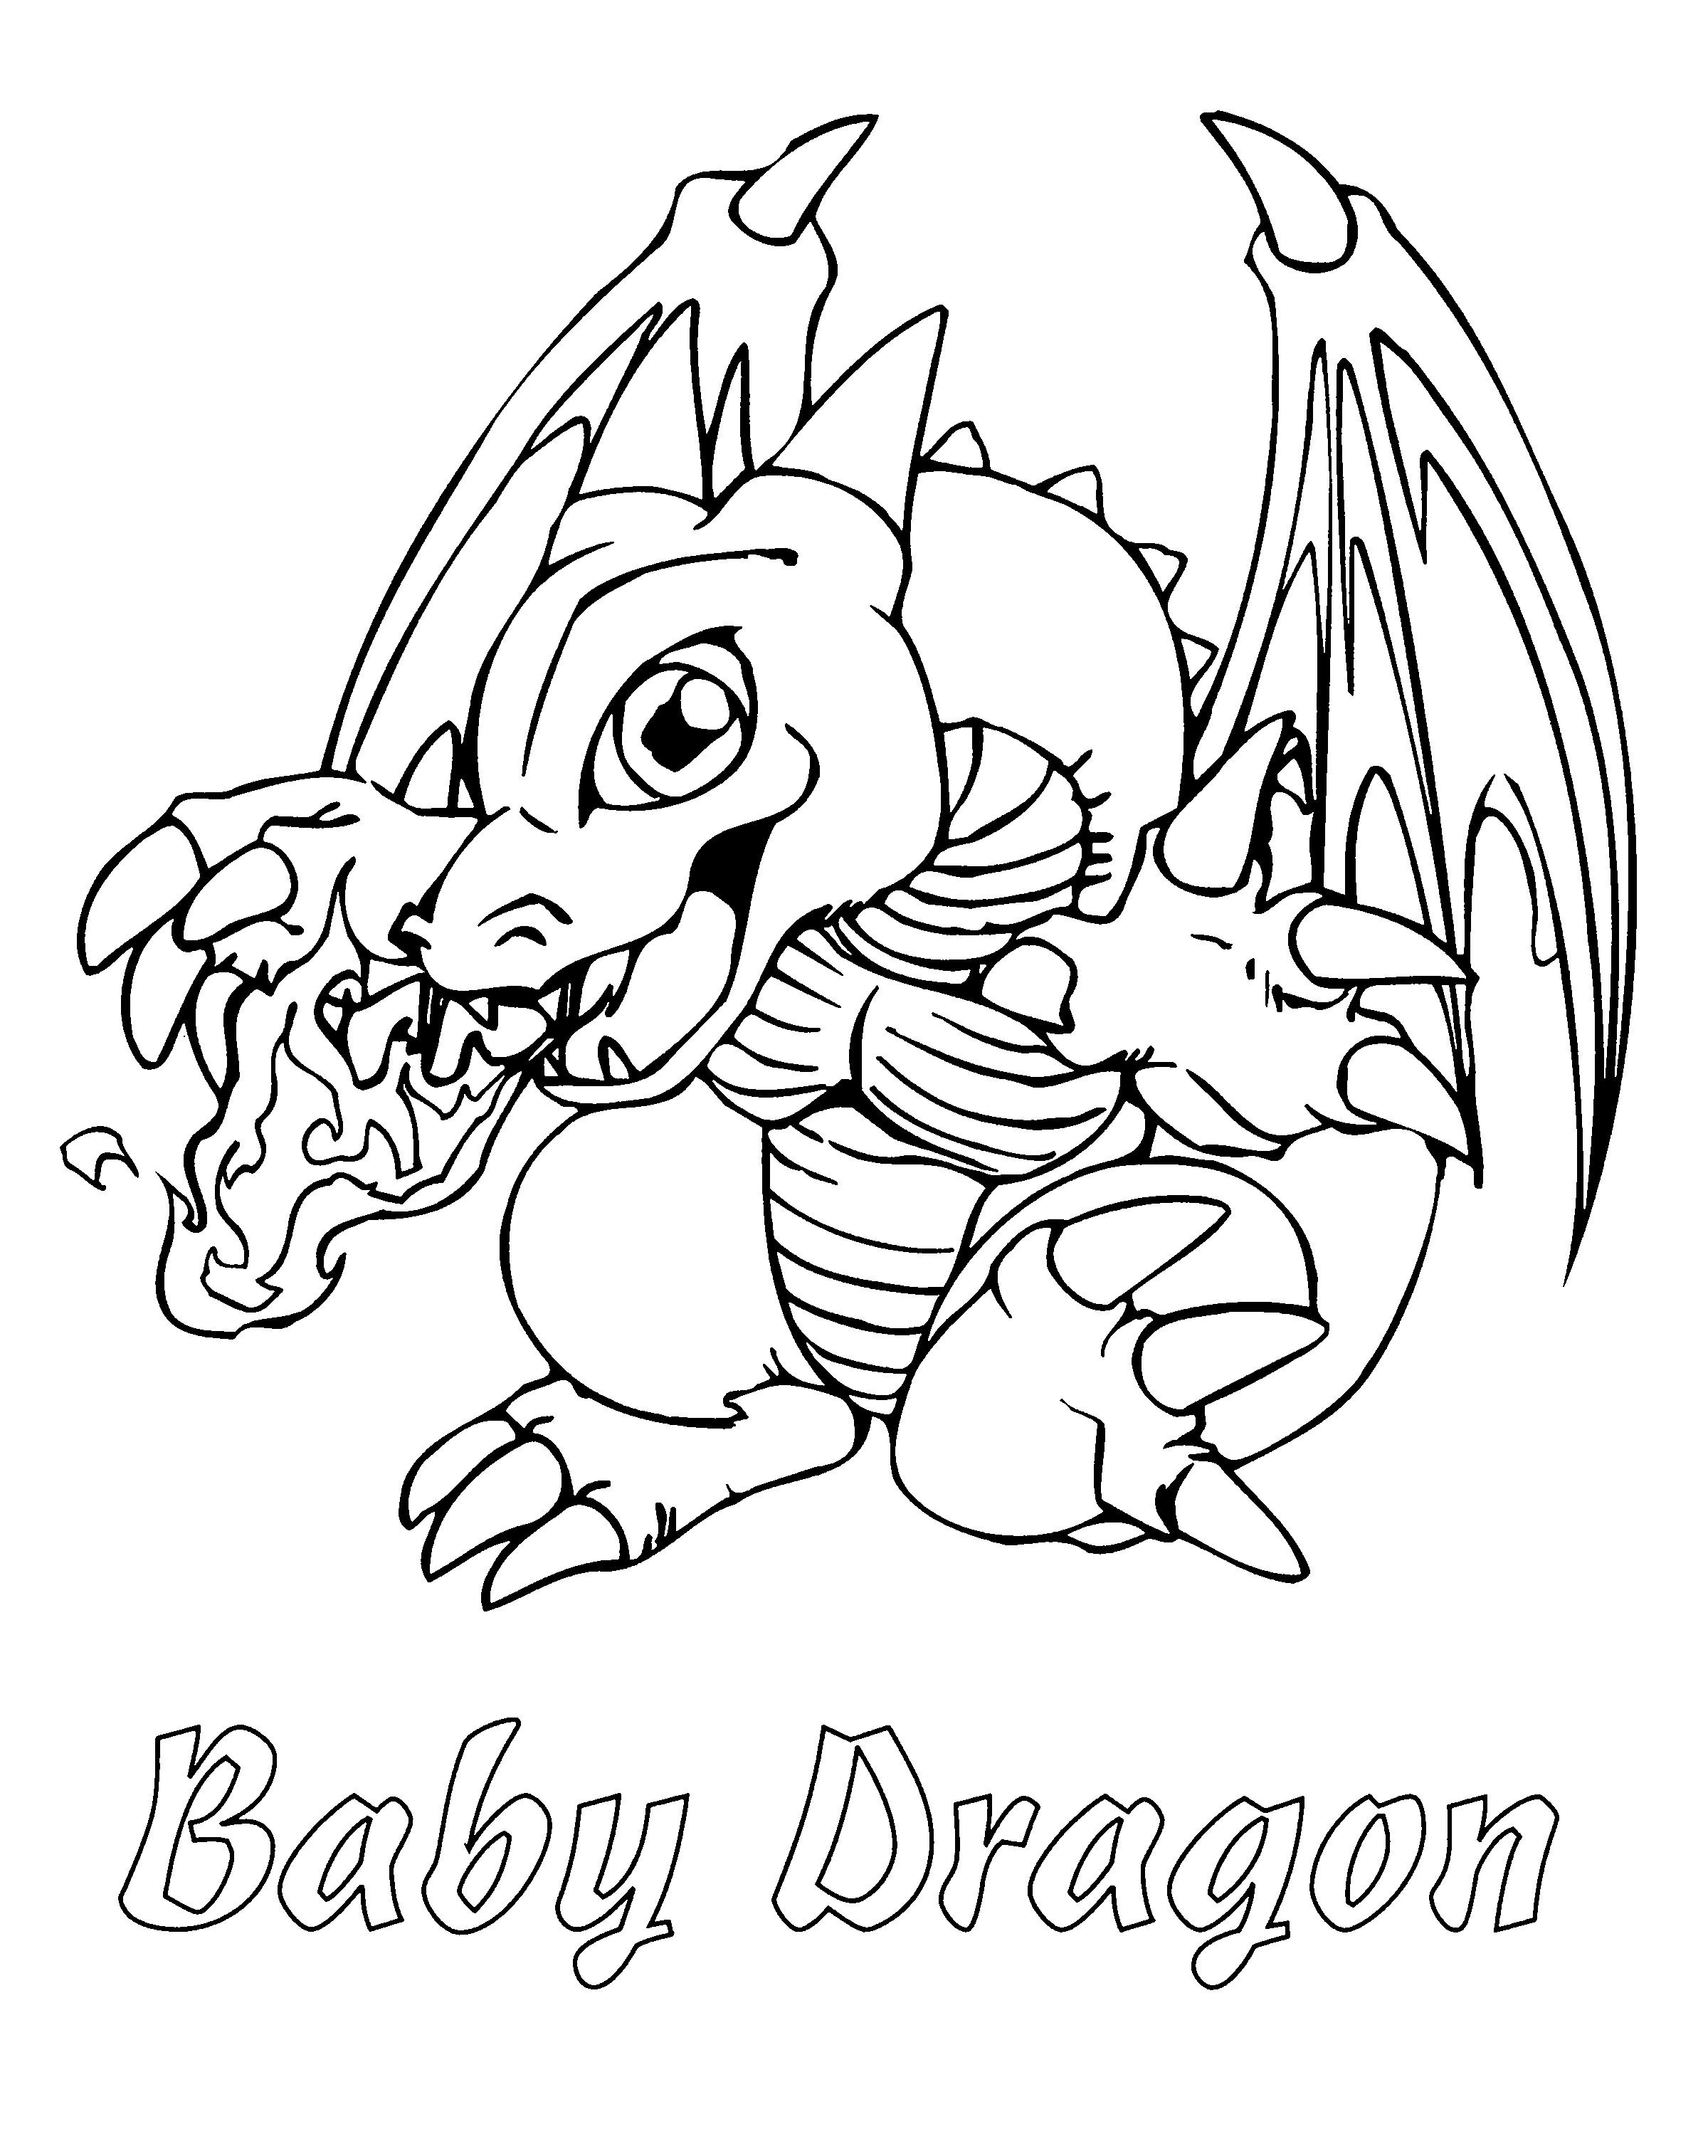 baby dragon coloring pages ideal free printable coloring pages bbdddbab - Dragon Coloring Books